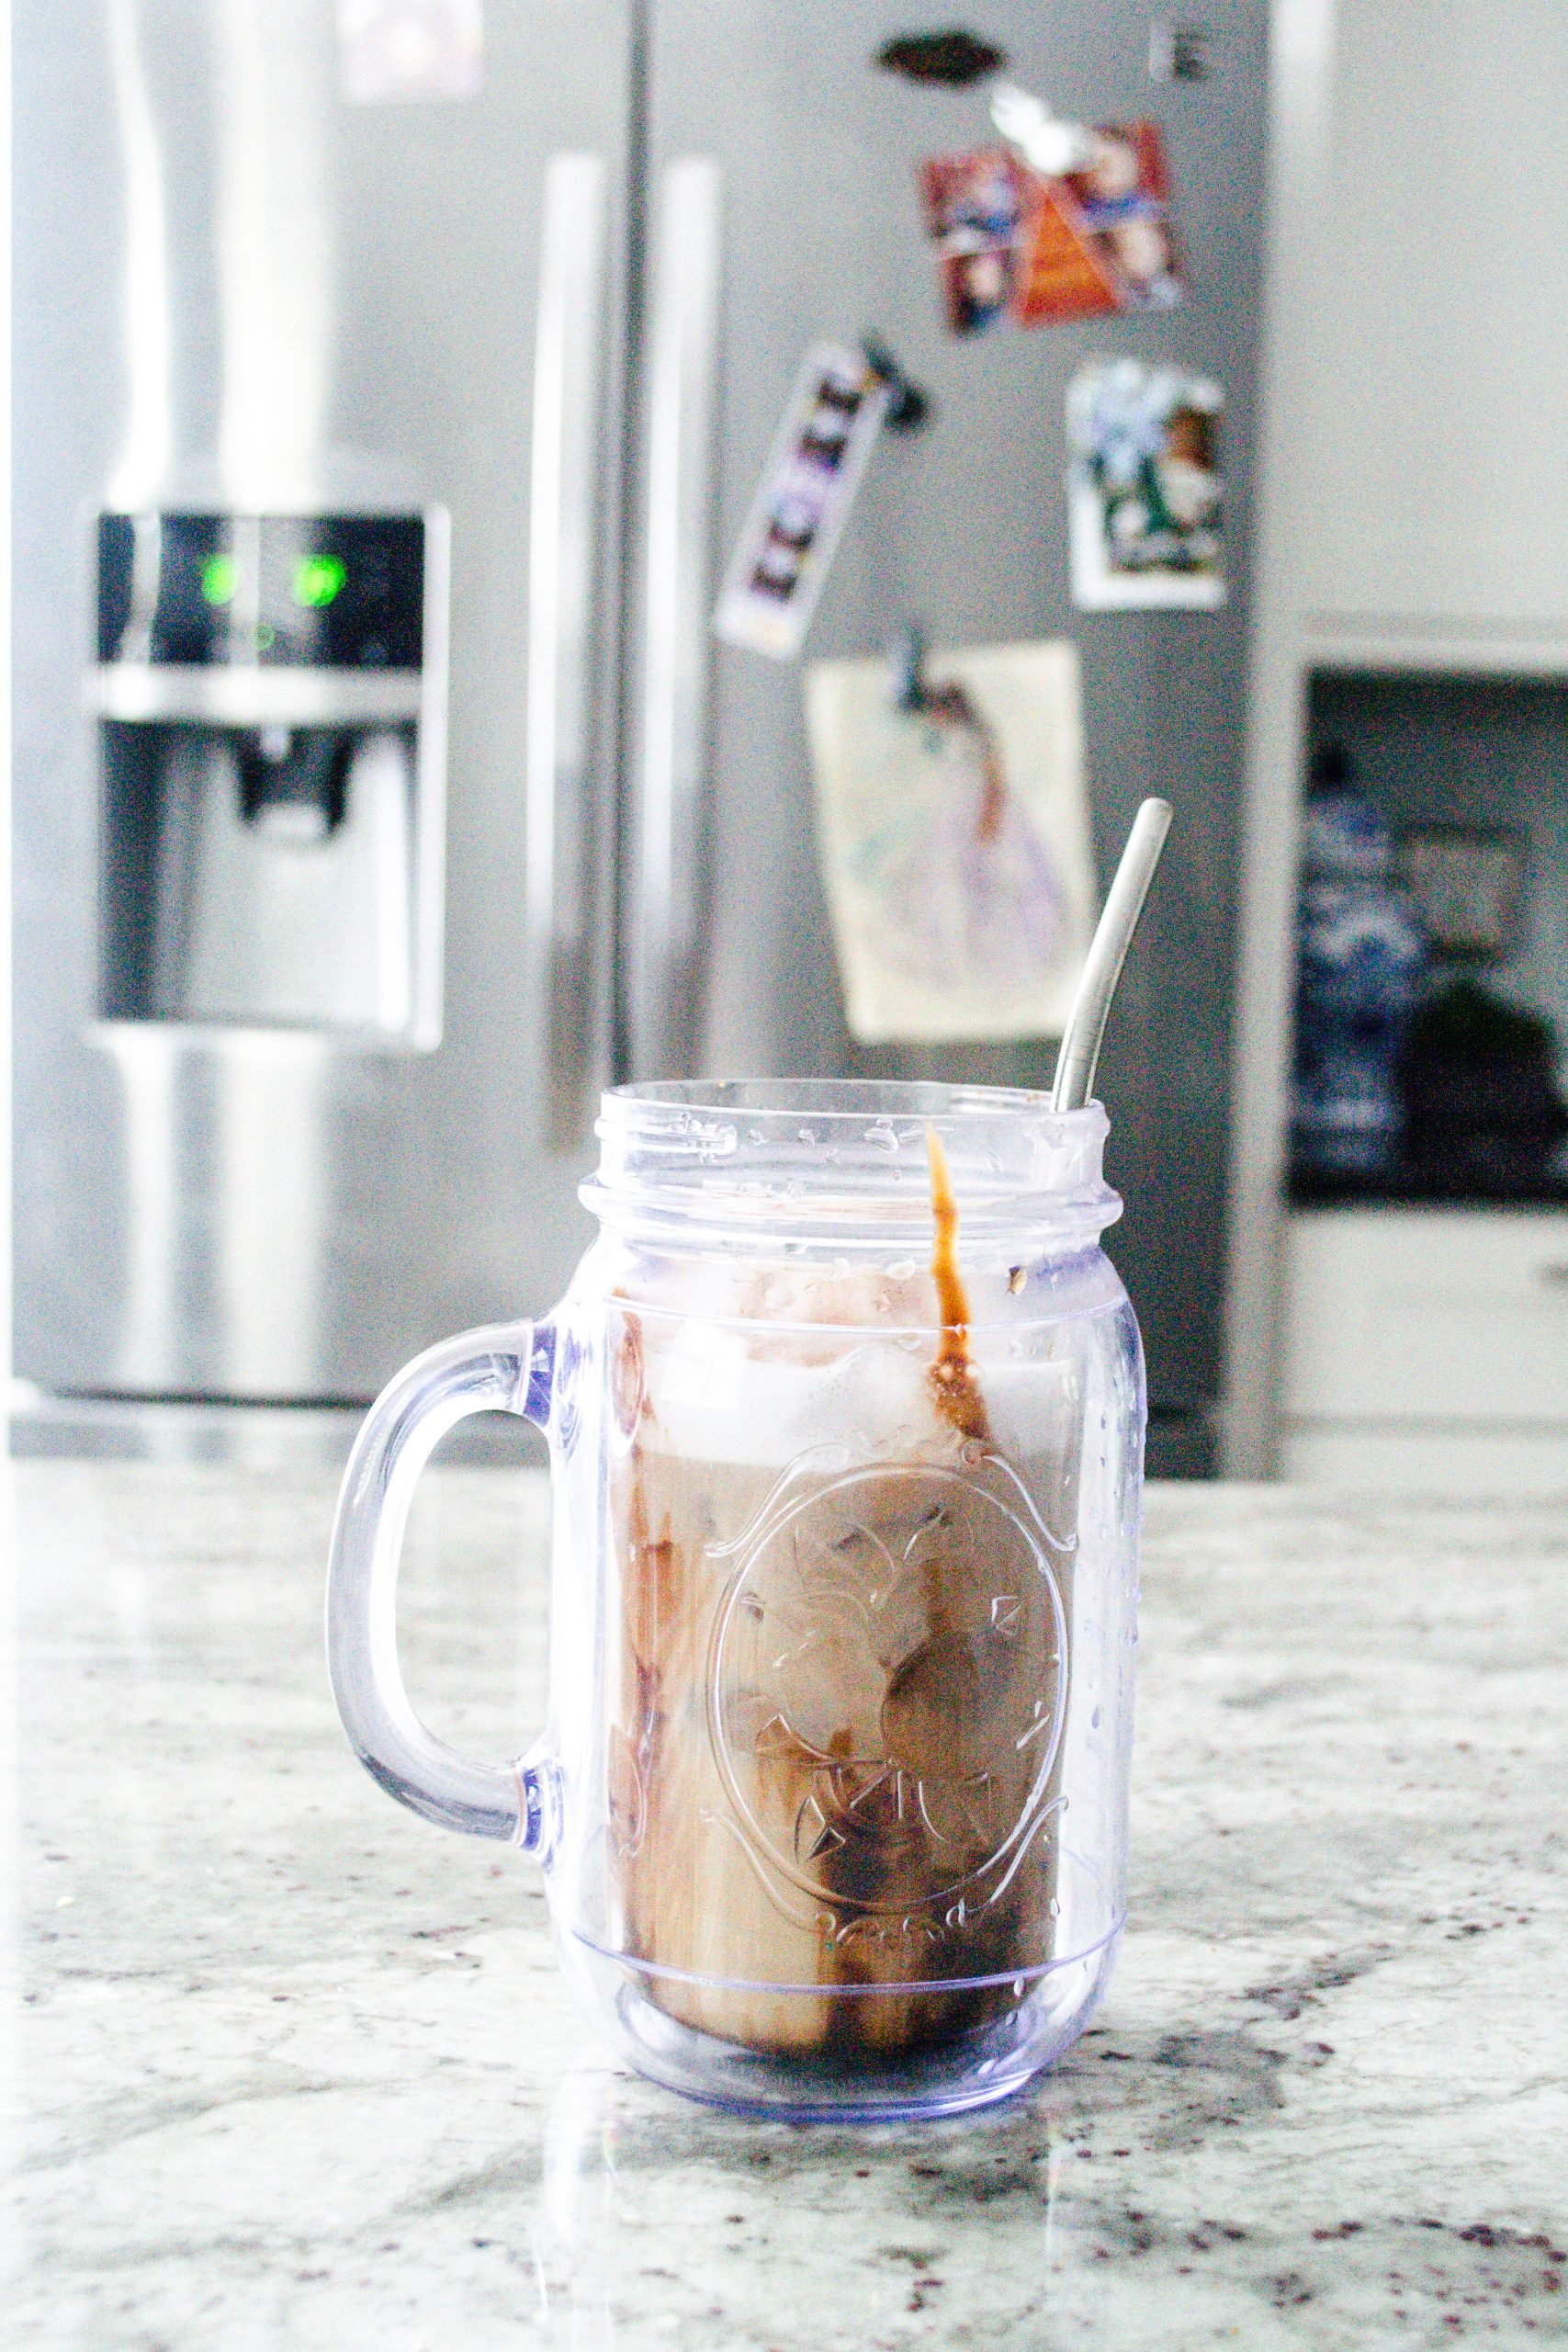 Stay at Home Round-Ups: 8 Easy Coffee Recipes You Can Make While at Home